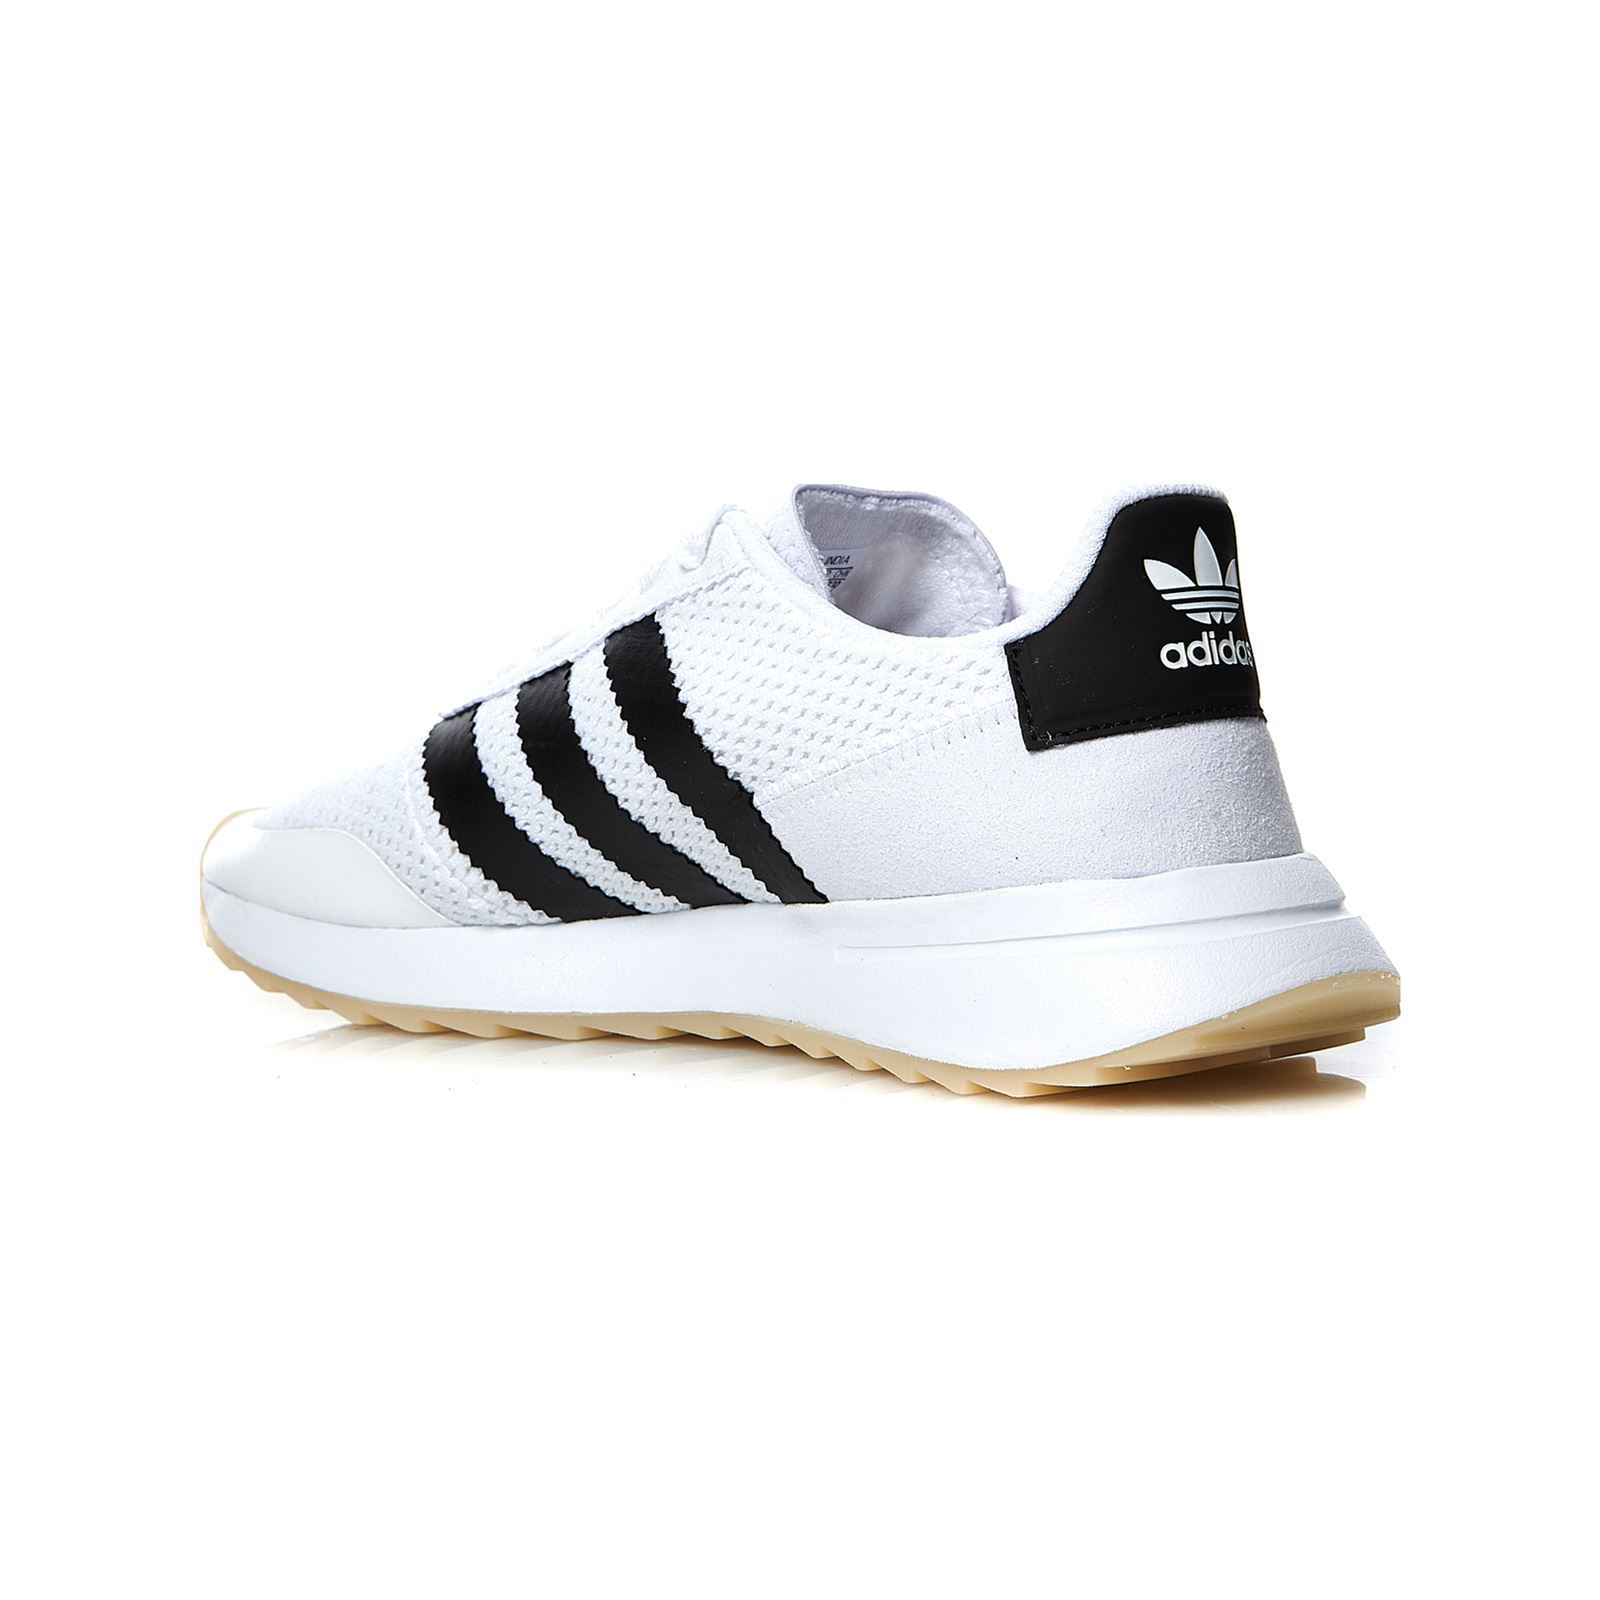 Originals Flb W Brandalley Blanc Adidas Baskets nFqYSAHwZ